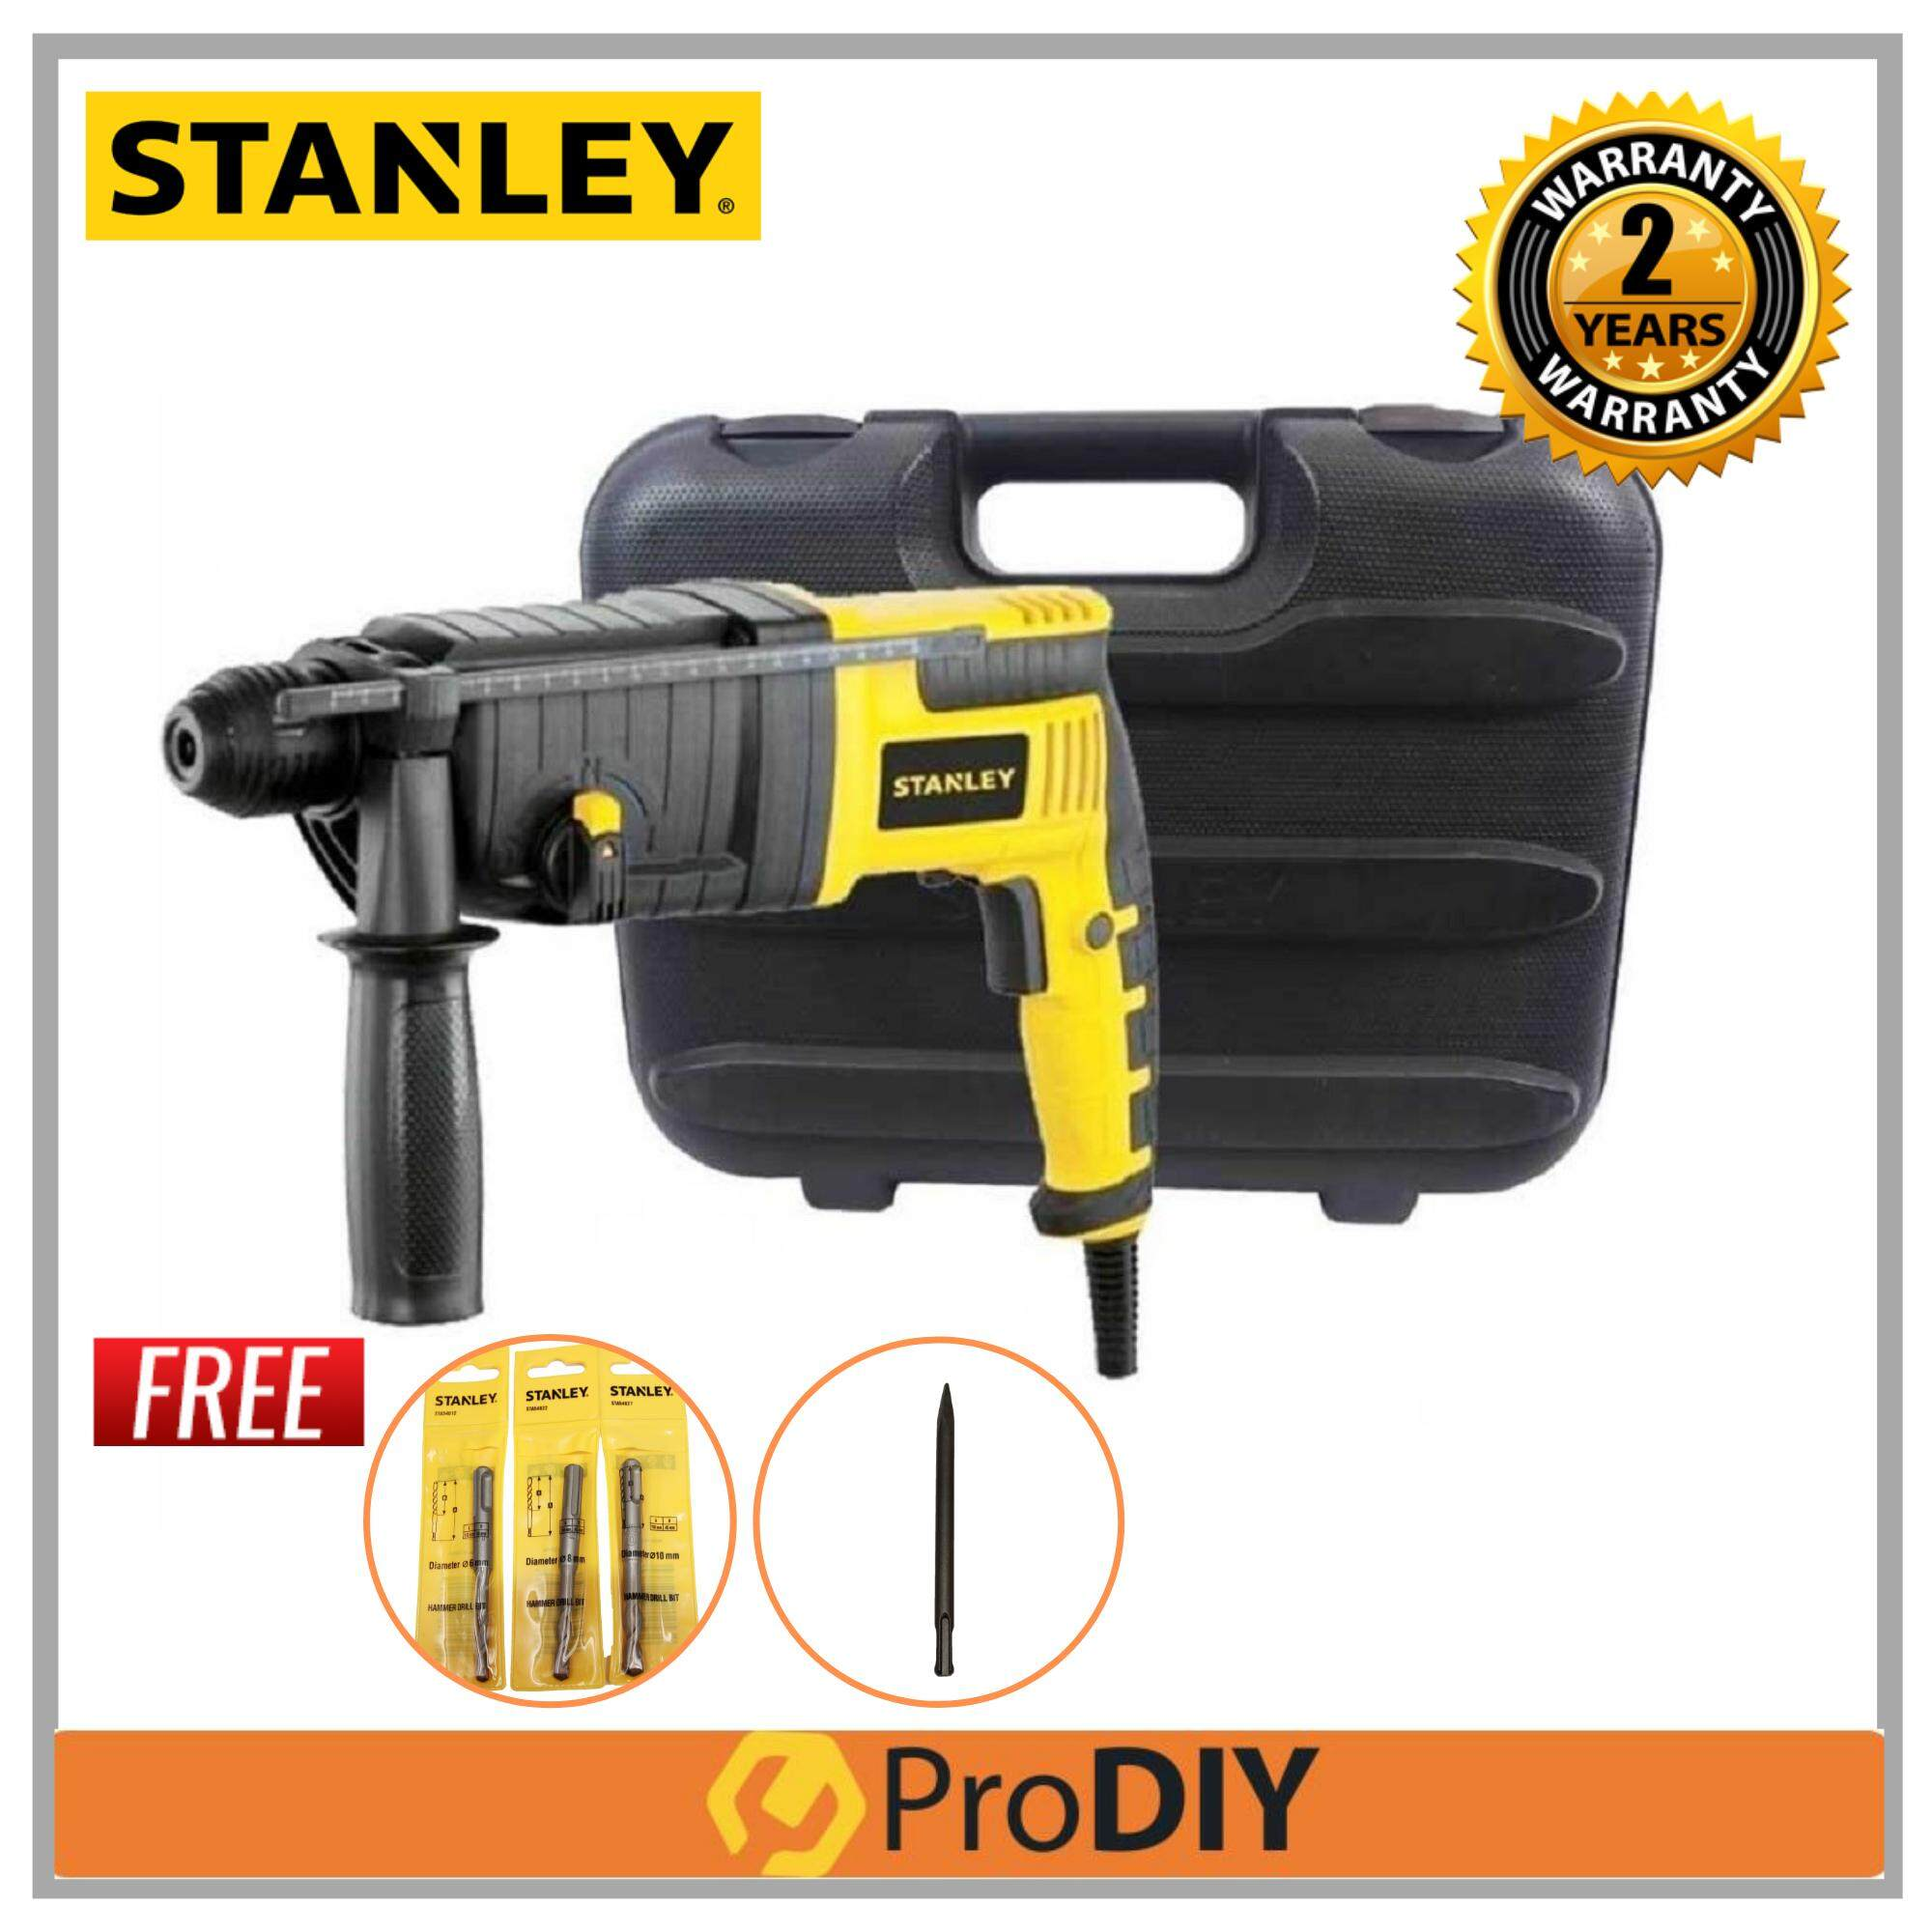 STANLEY STEL503K 720W 22MM Rotary Hammer 3 Mode FOC 3Pcs STANLEY Hammer Drill Bit + 1 Pcs Moil Point